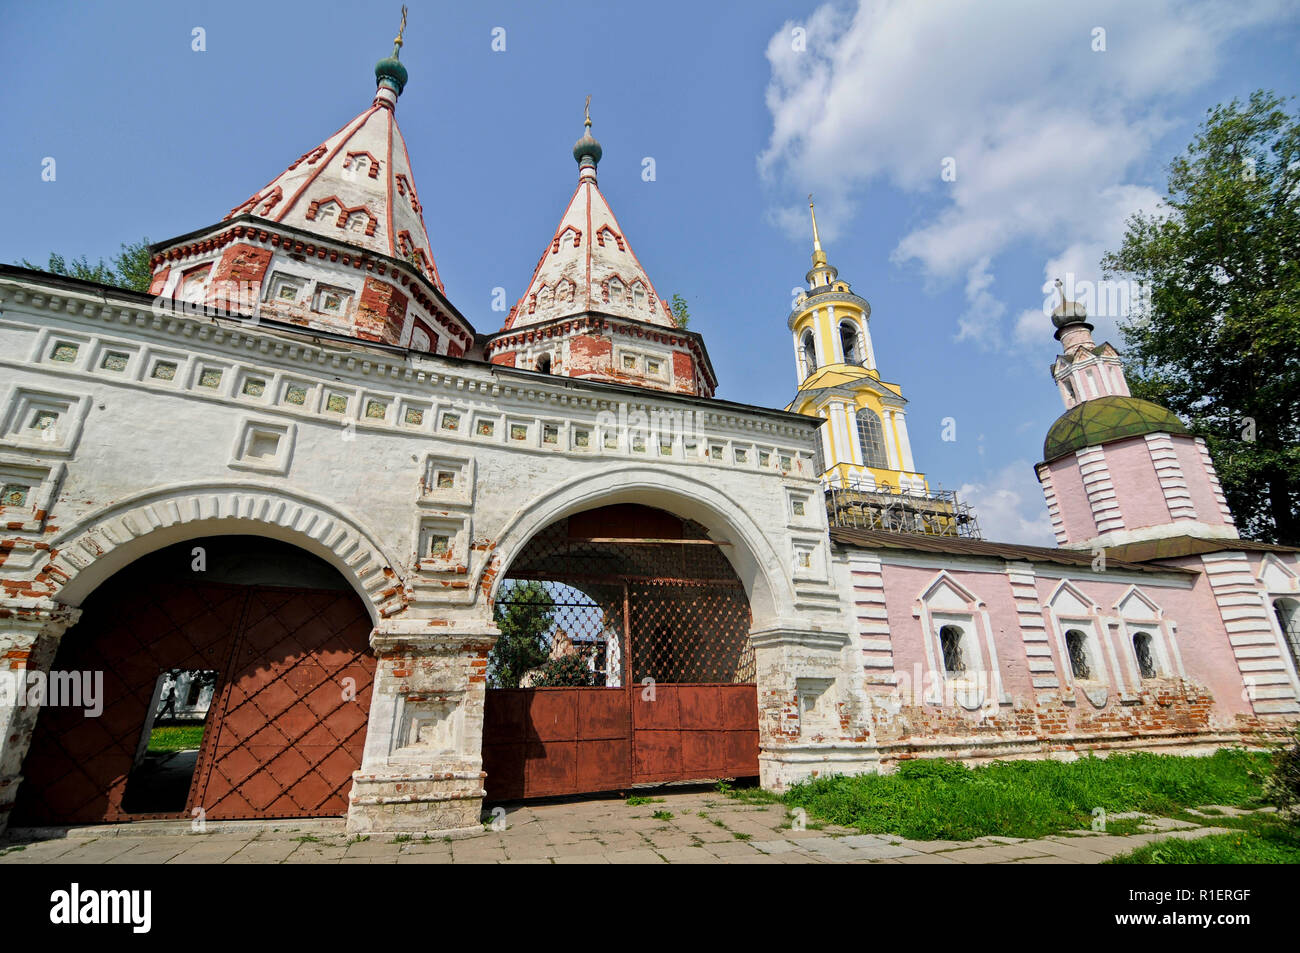 Rizopolozhensky ('Deposition of the Robe') monastery, Suzdal, Russia - Stock Image